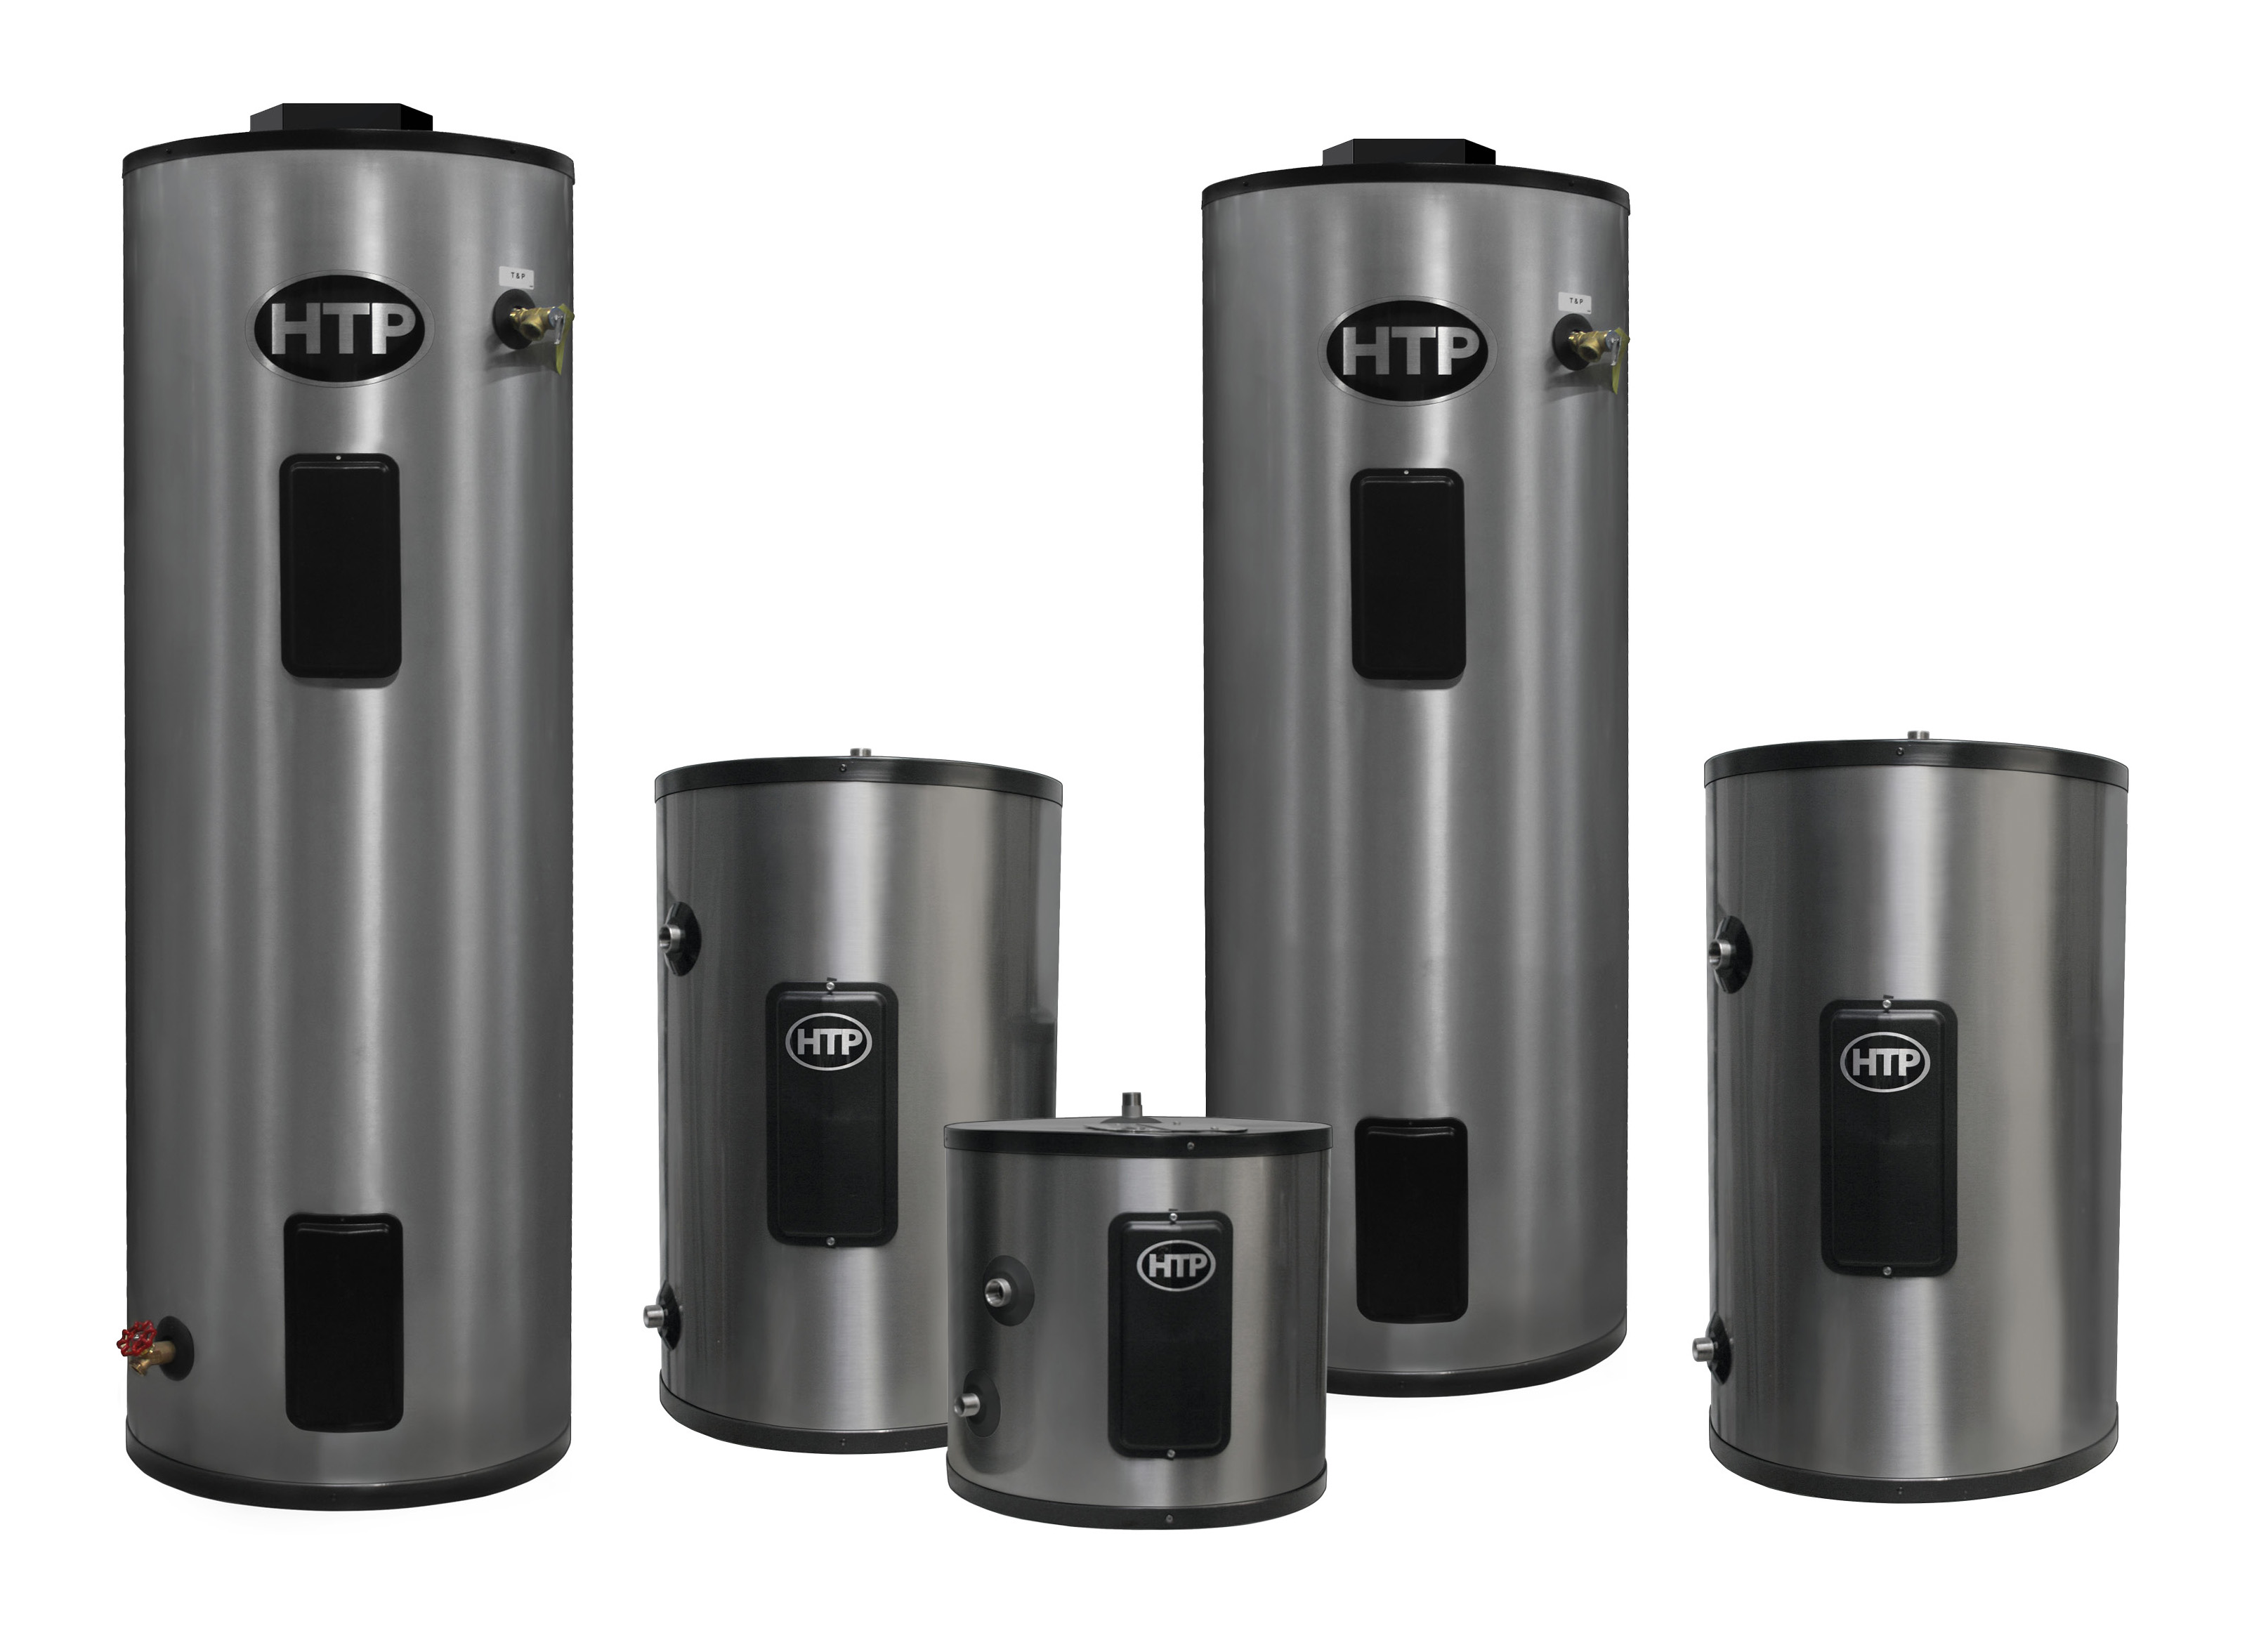 Htp Everlast Commercial Water Heater